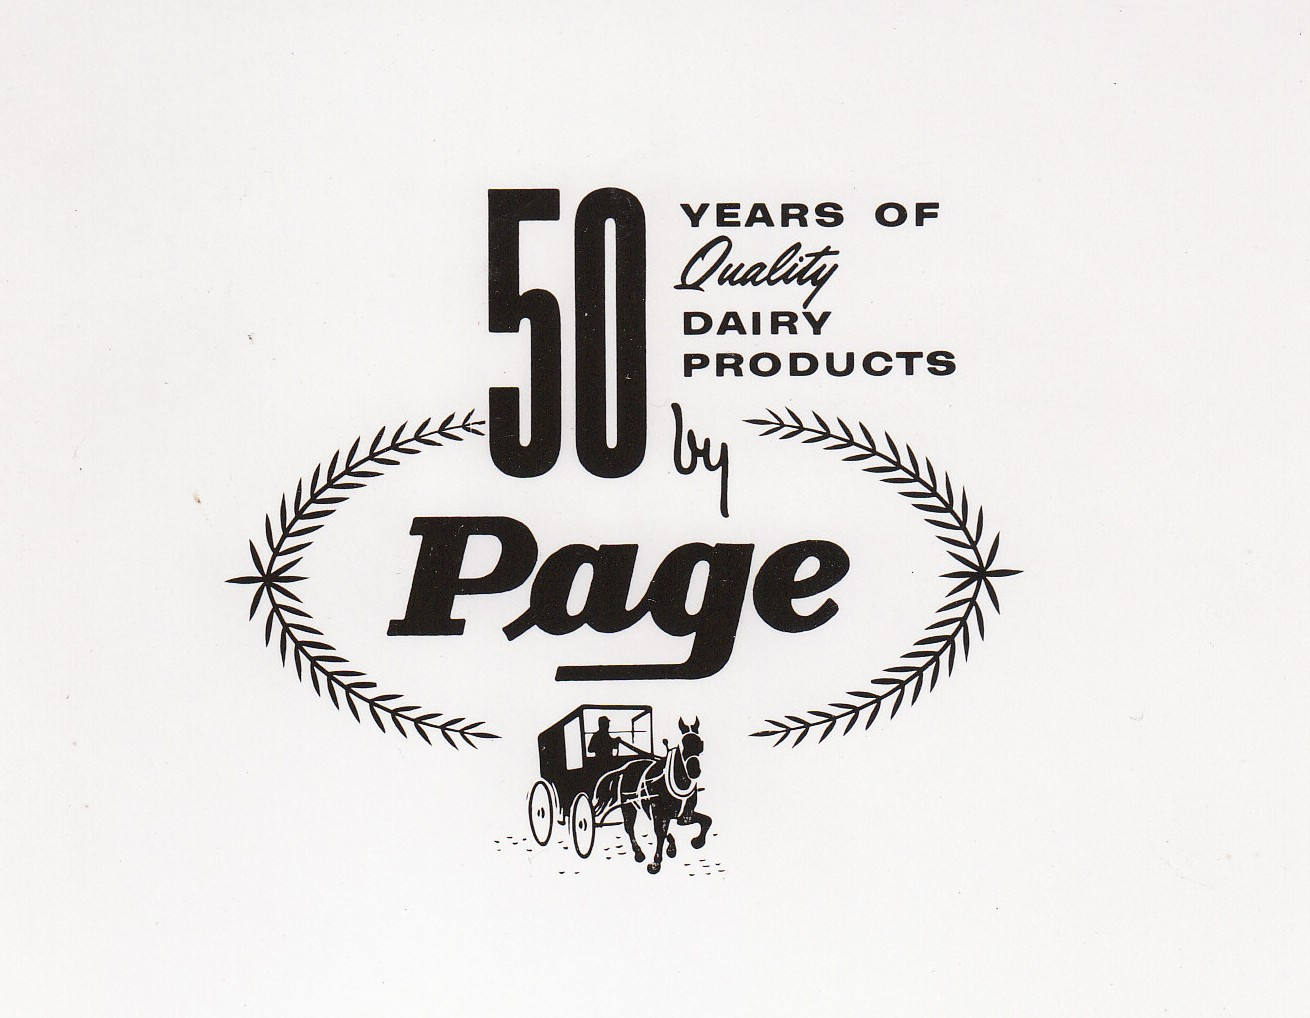 Page\'s 50 Year of Quality Products Stickers